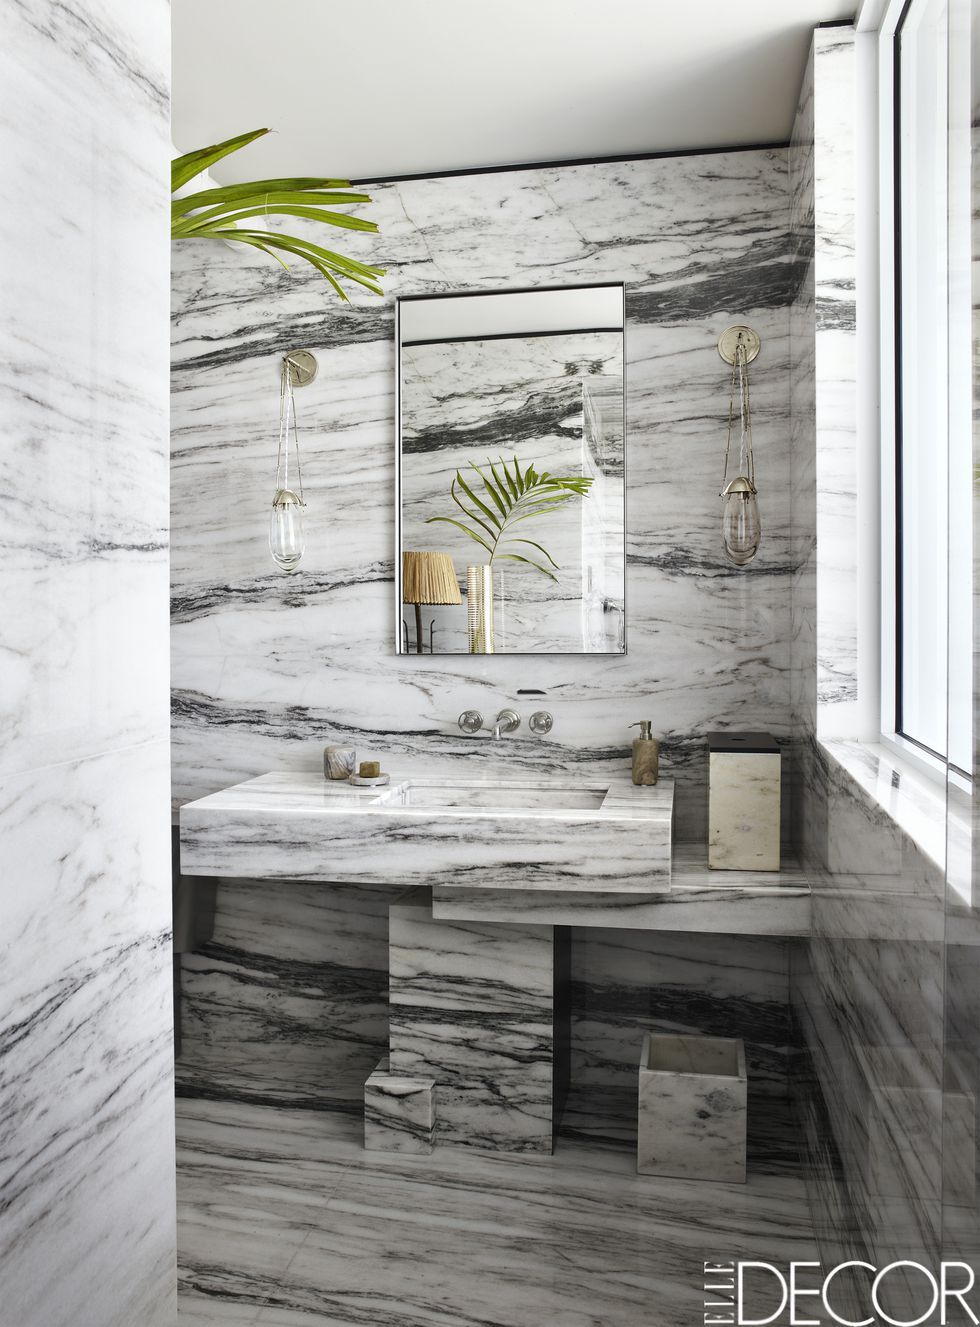 Top Bathroom Trends of 2019 - What Bathroom Styles Are In ... on Small Bathroom Remodel Ideas 2019  id=15510